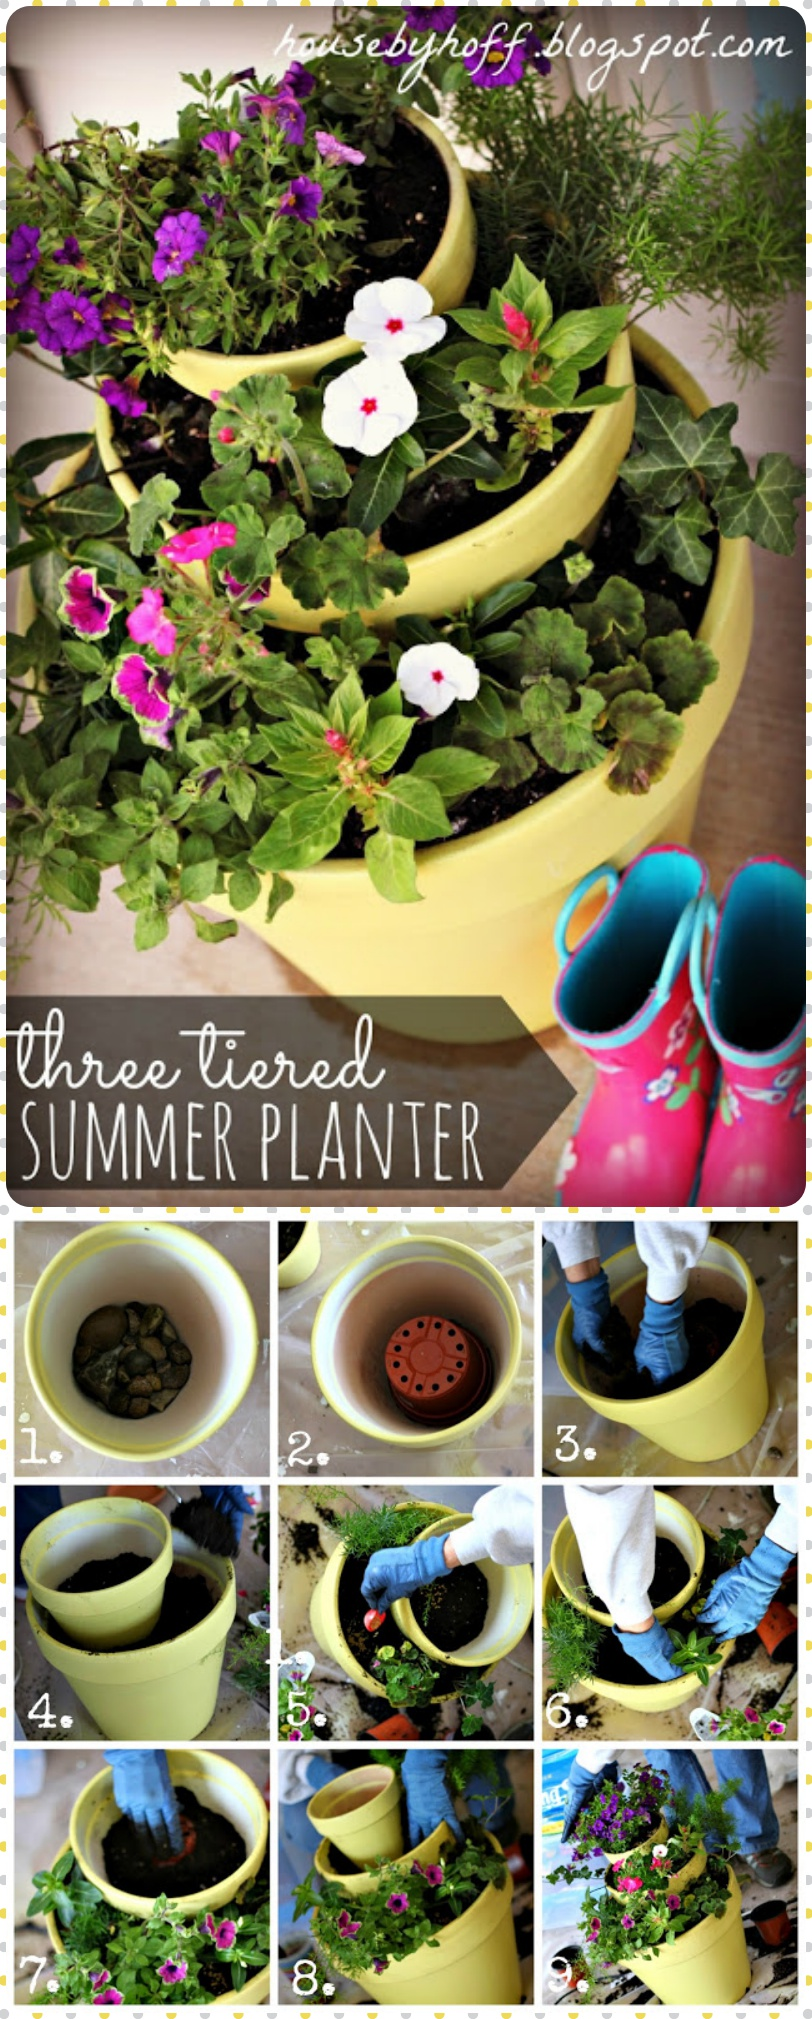 A Three Tiered Summer Planter